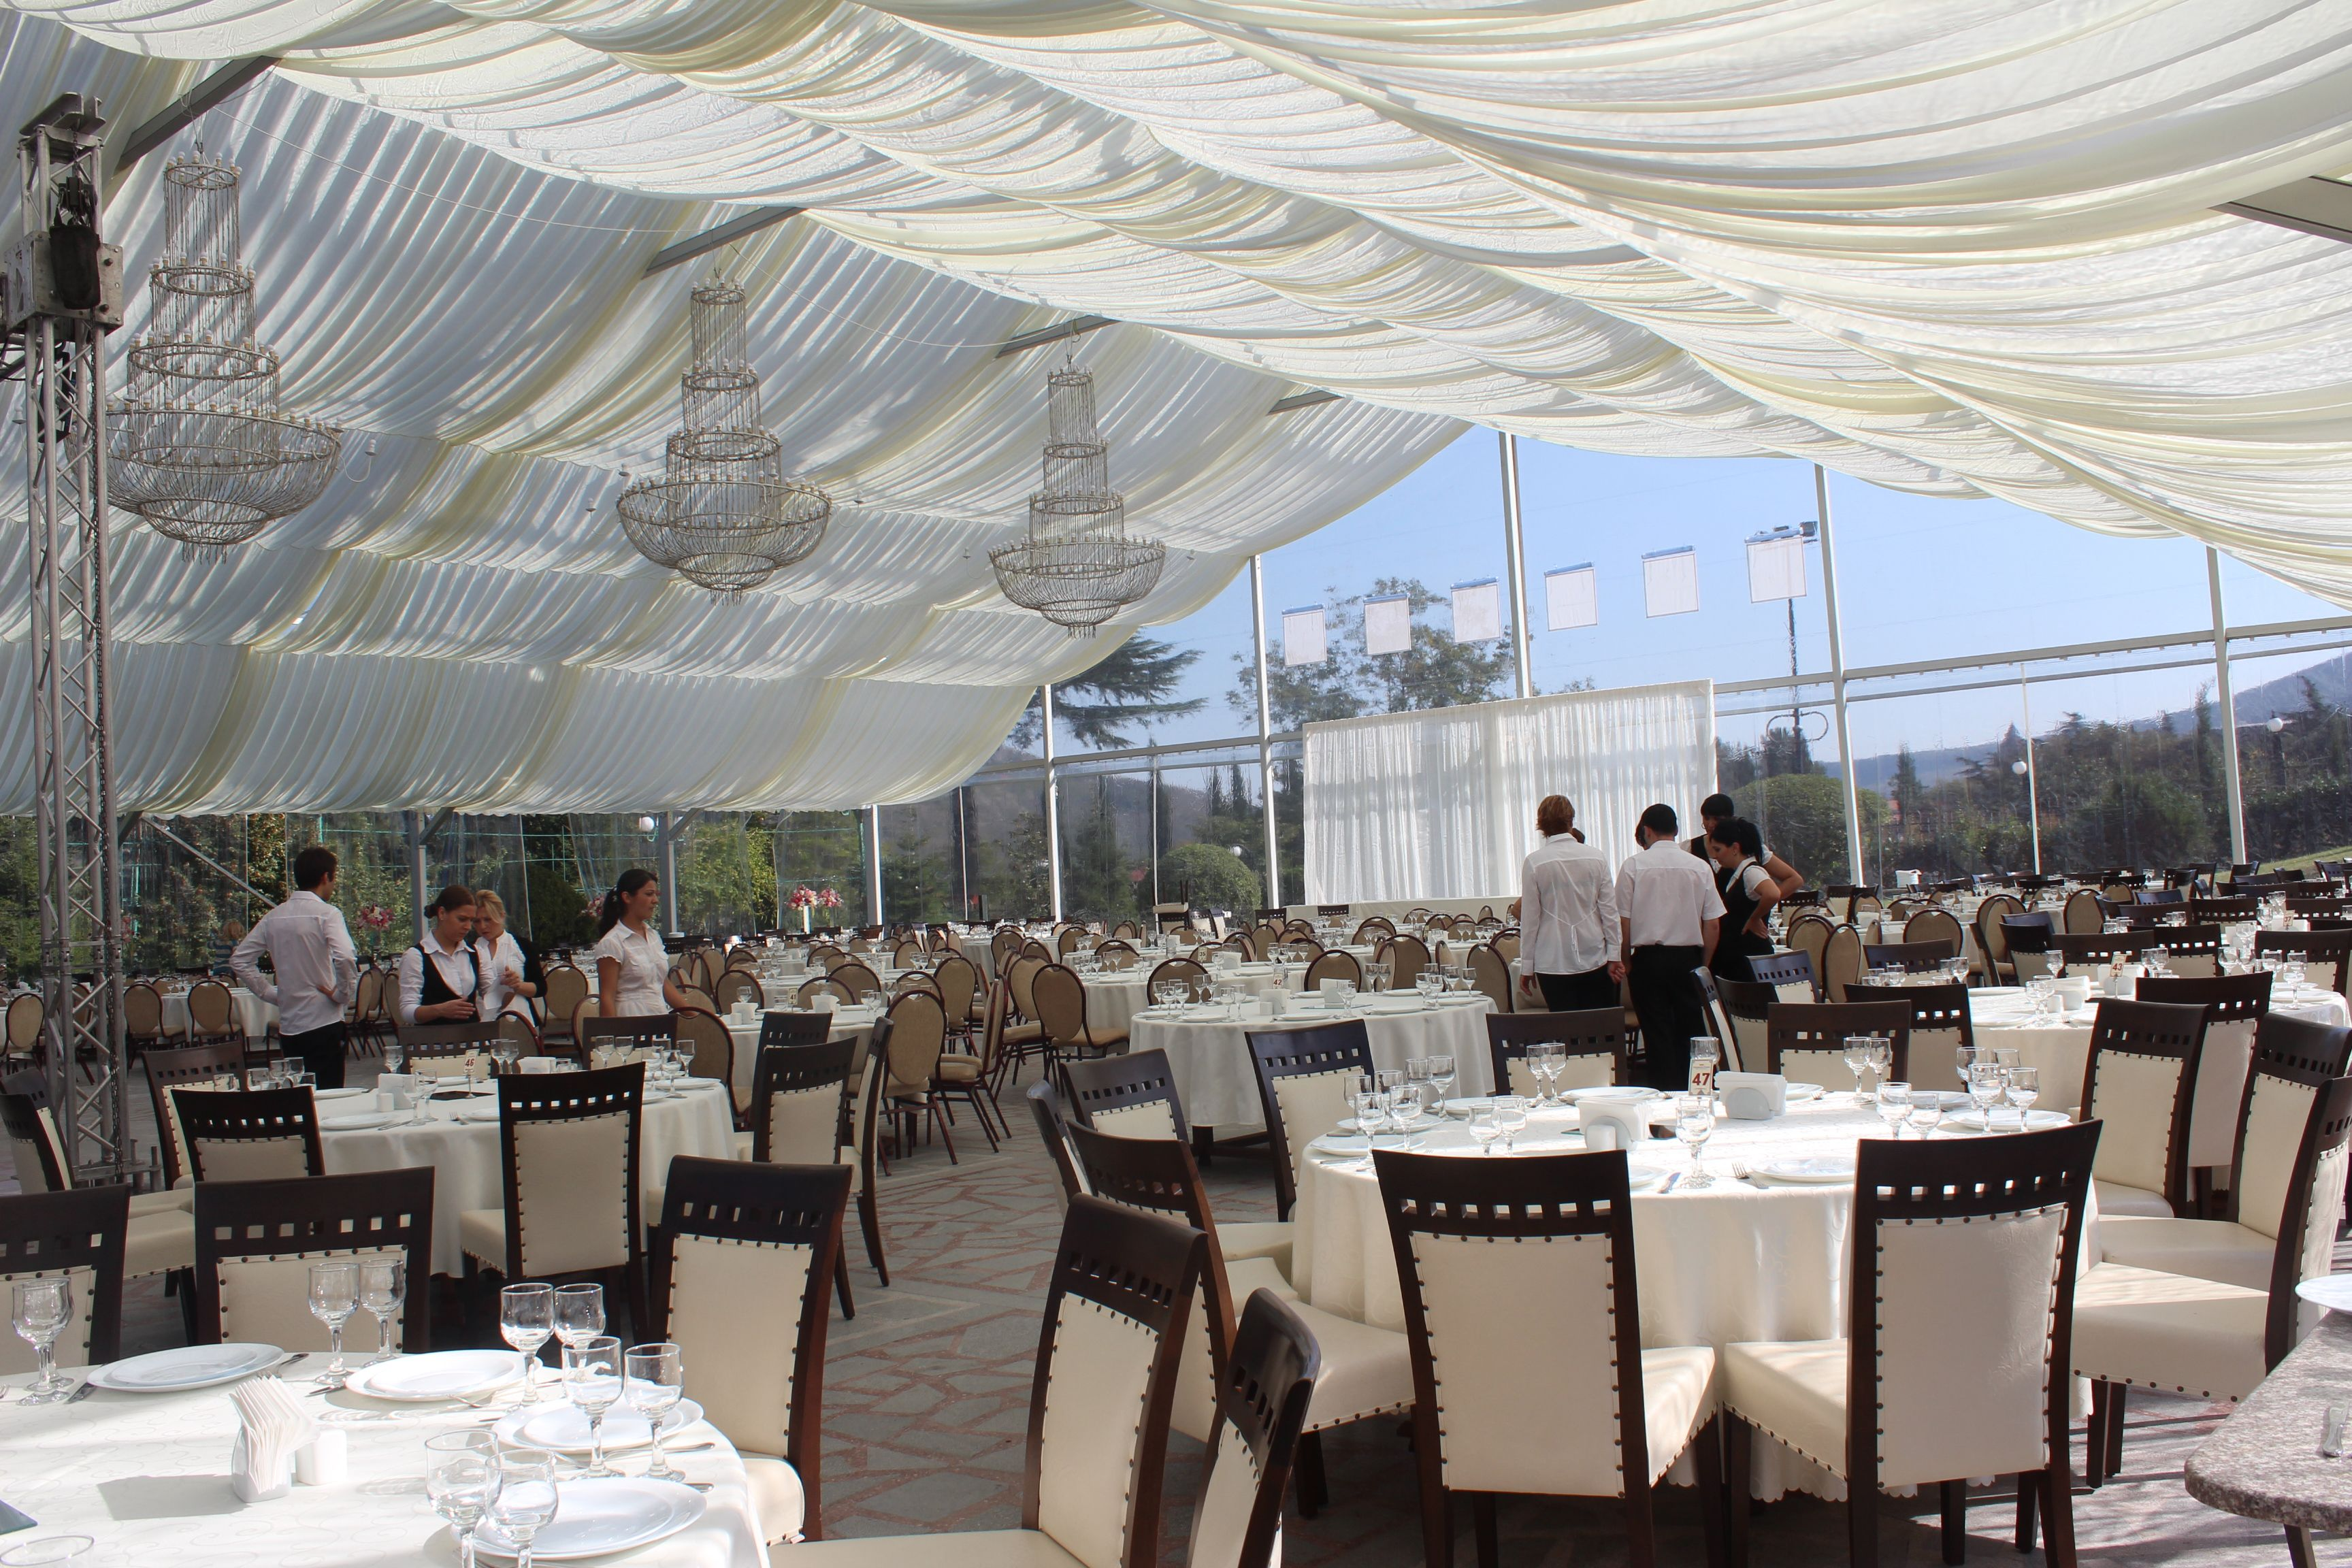 Wedding tents for 300 people - Wedding Tent For Sale Frame Tent Aluminum Tent Clear Span Marquee Transparent